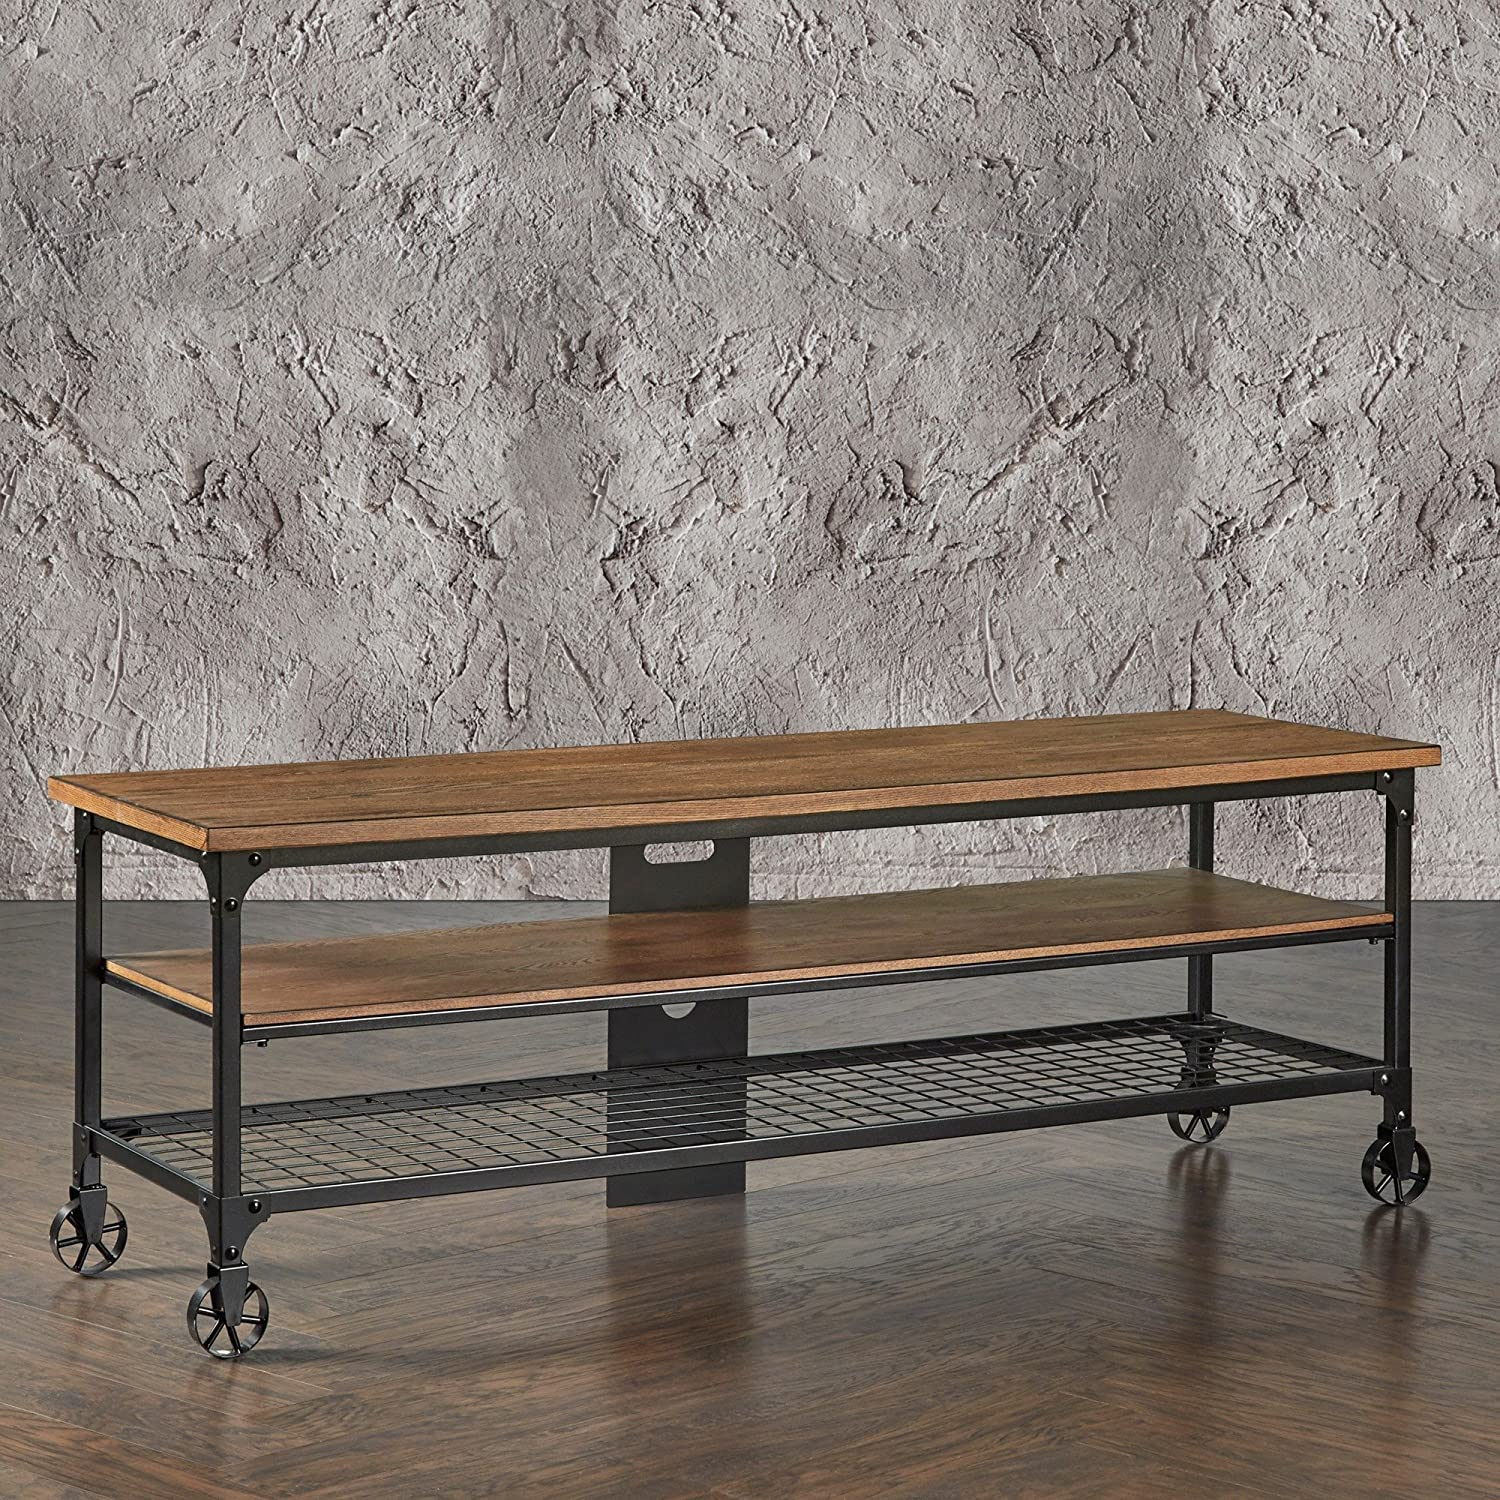 Amazon.com: ModHaus Living Modern Industrial Rustic Riveted Black Metal U0026  Wood TV Stand With Decorative Wheels   Includes (TM) Pen (65): Kitchen U0026  Dining